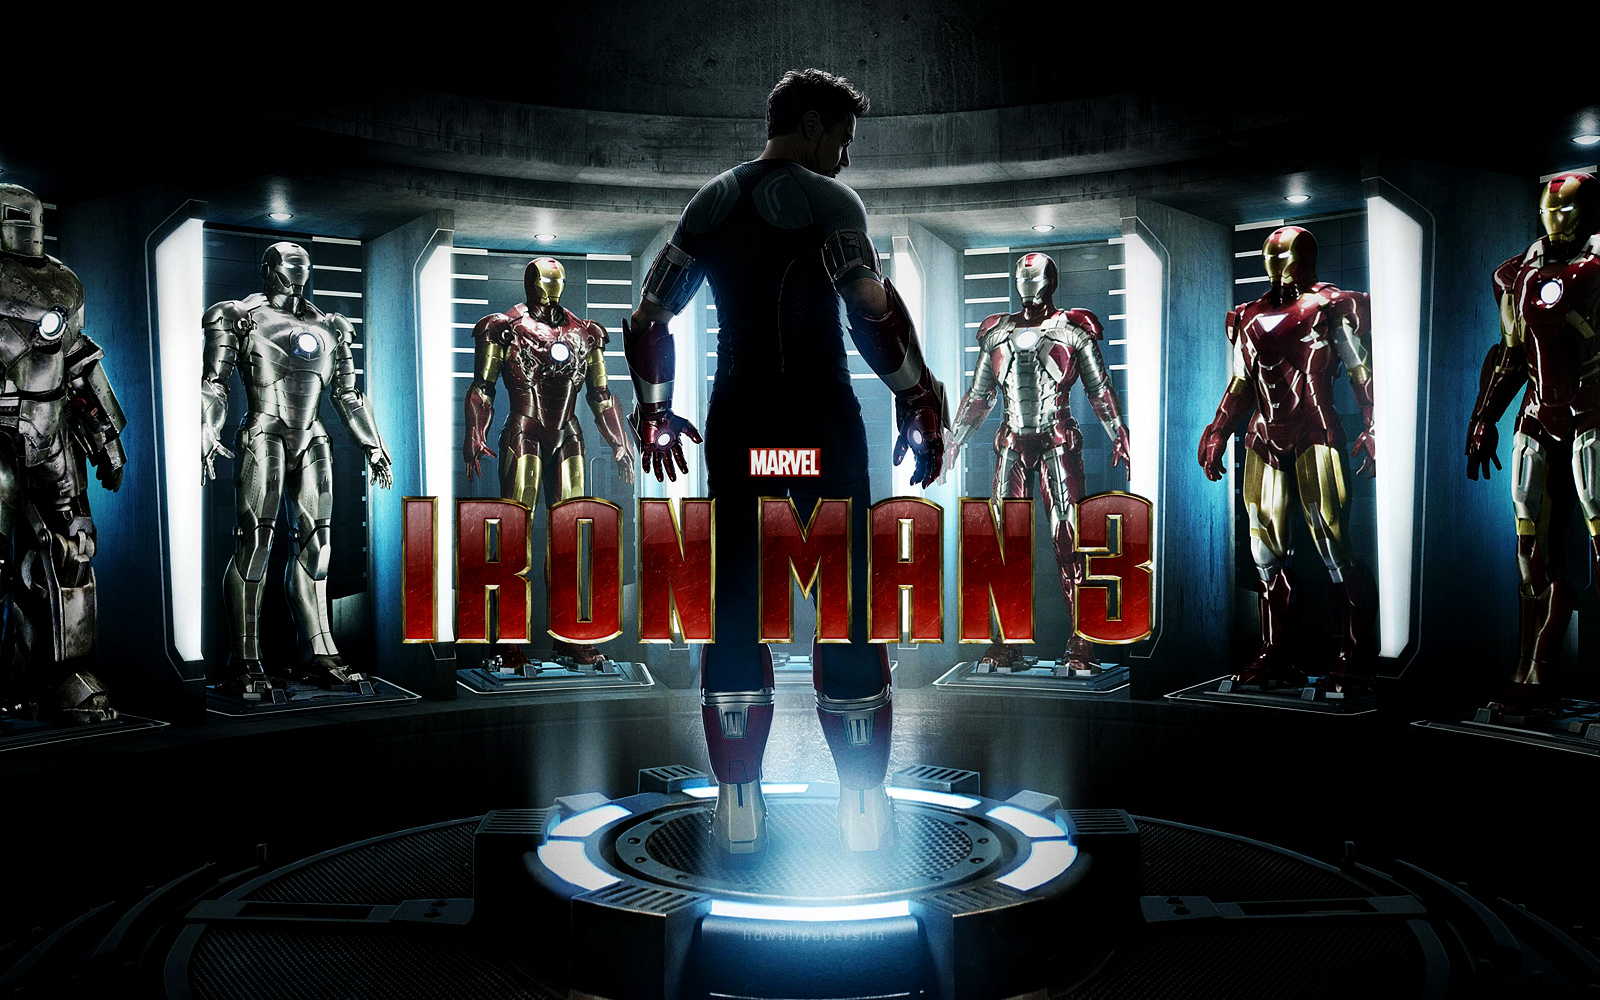 http://4.bp.blogspot.com/-AaMhwE9Ix2s/UIe5nmvMJYI/AAAAAAAAFnw/EwpbF5Ll-7M/s1600/Iron-Man-3-Movie-HD-Wallpaper_Vvallpaper.Net.jpg